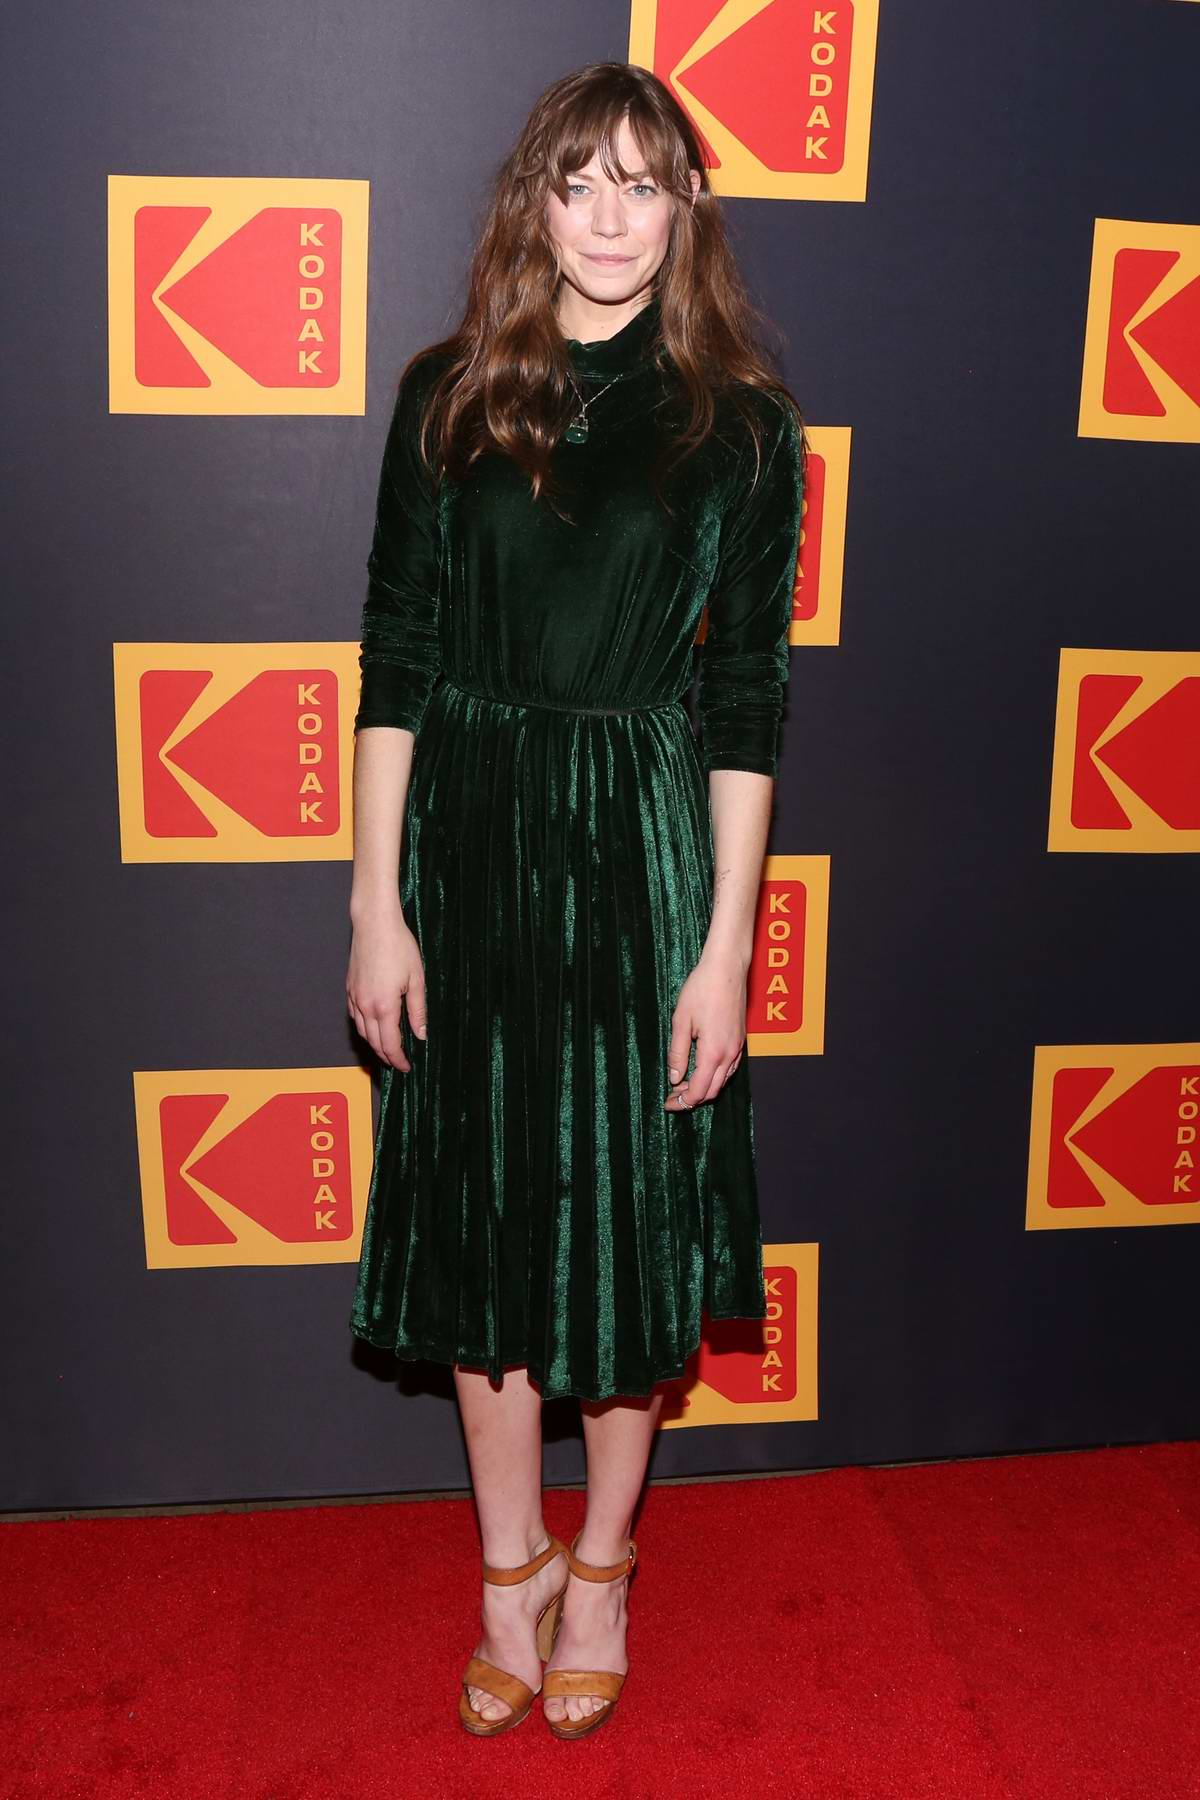 Analeigh Tipton attends the 3rd annual Kodak Awards at Hudson Loft in Los Angeles